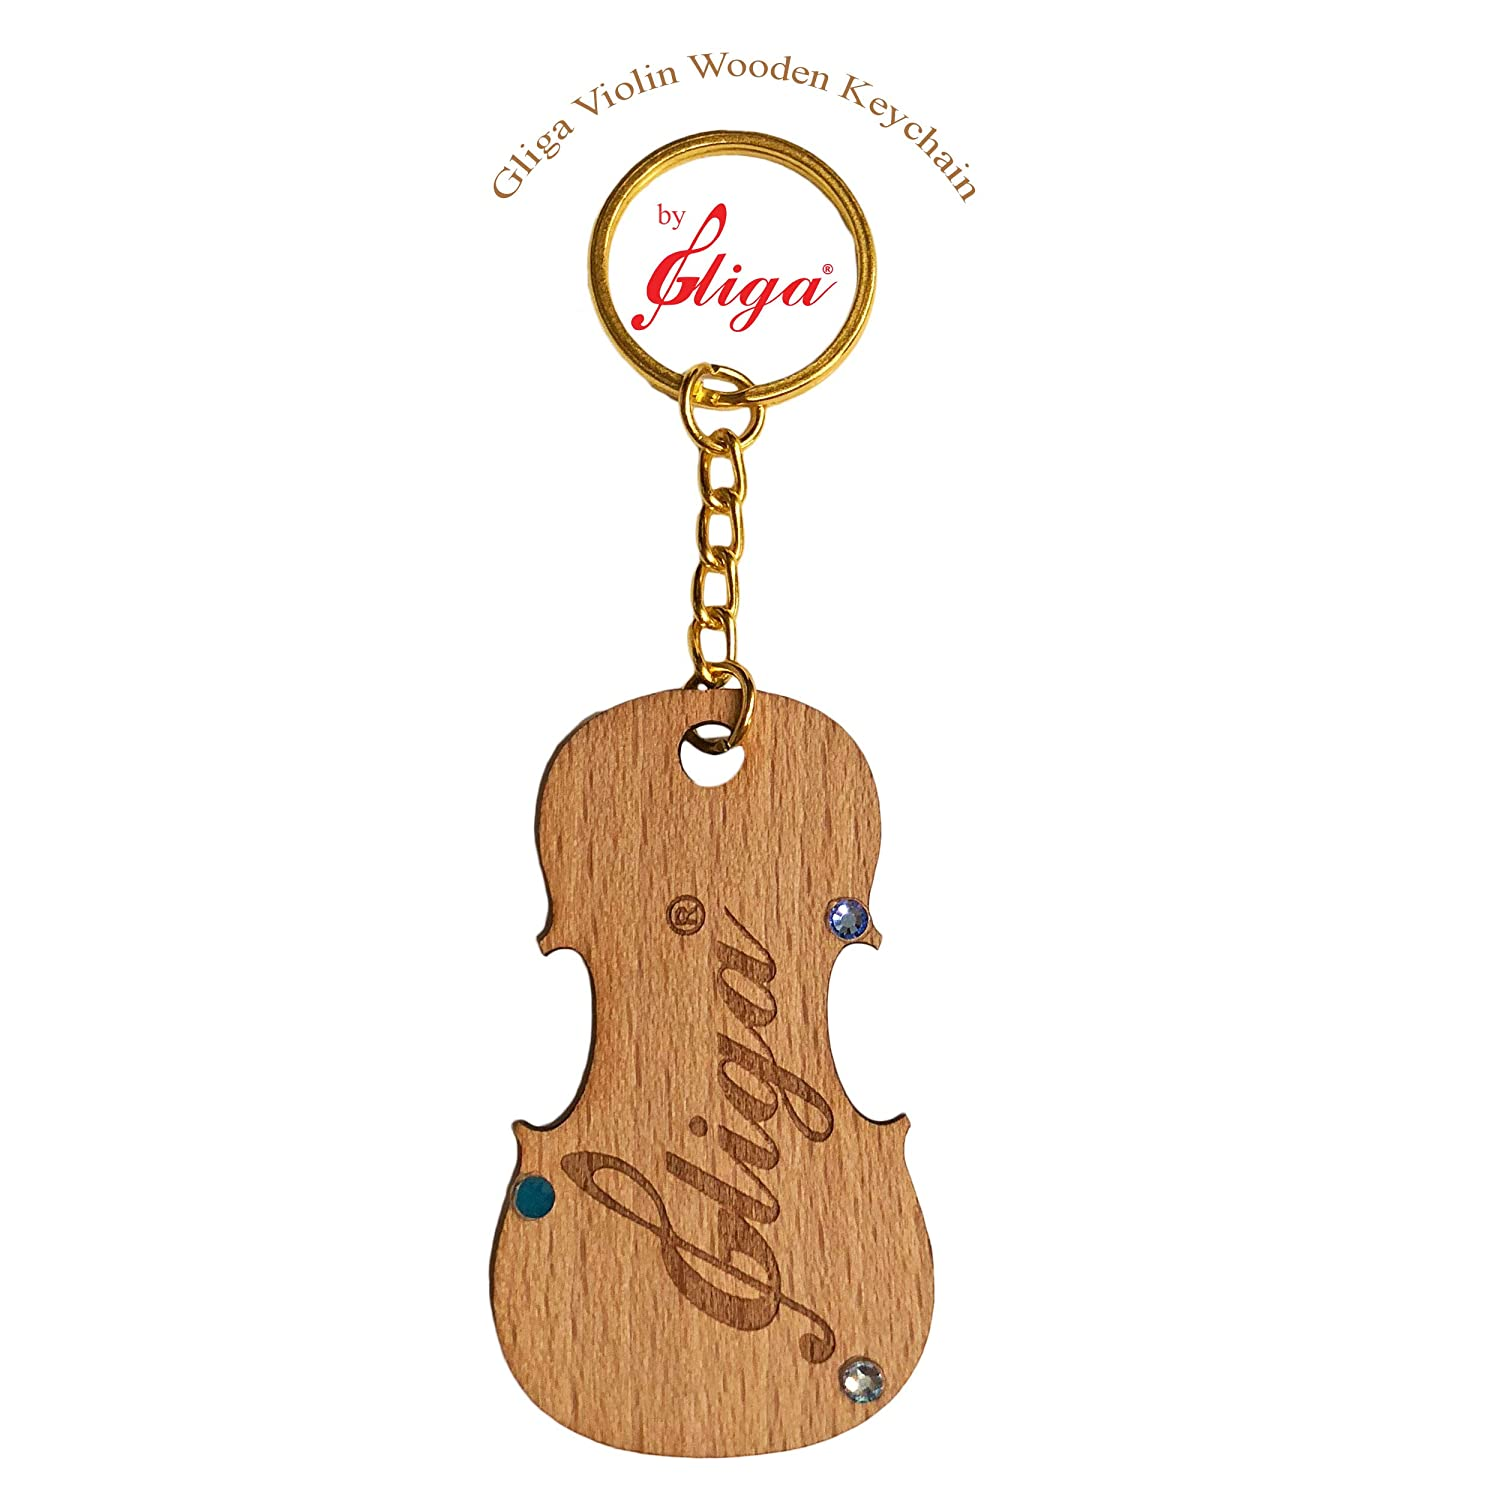 Amazon.com: Gliga Violin Engraved Wood Maple Keychain, Best ...